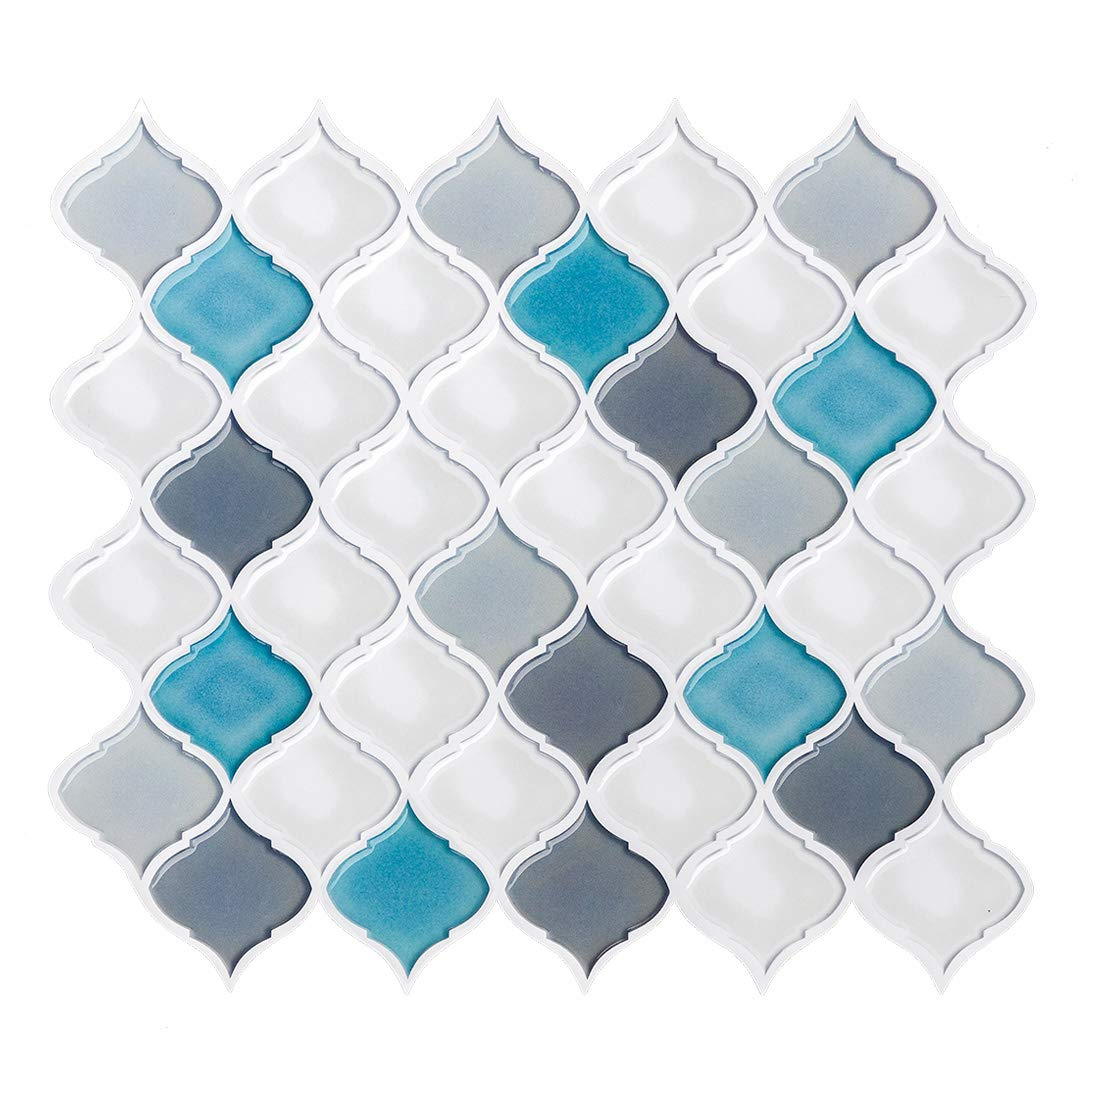 Backyard Gas Fire Pit Ideas, Peel And Stick Wall Tile For Kitchen Backsplash Mist White Arabesque Tile Backsplash Kitchen Backsplash Tiles Peel And Stick Wall Stickers 6 Sheets Buy Online In Gibraltar Missing Category Value Products In Gibraltar